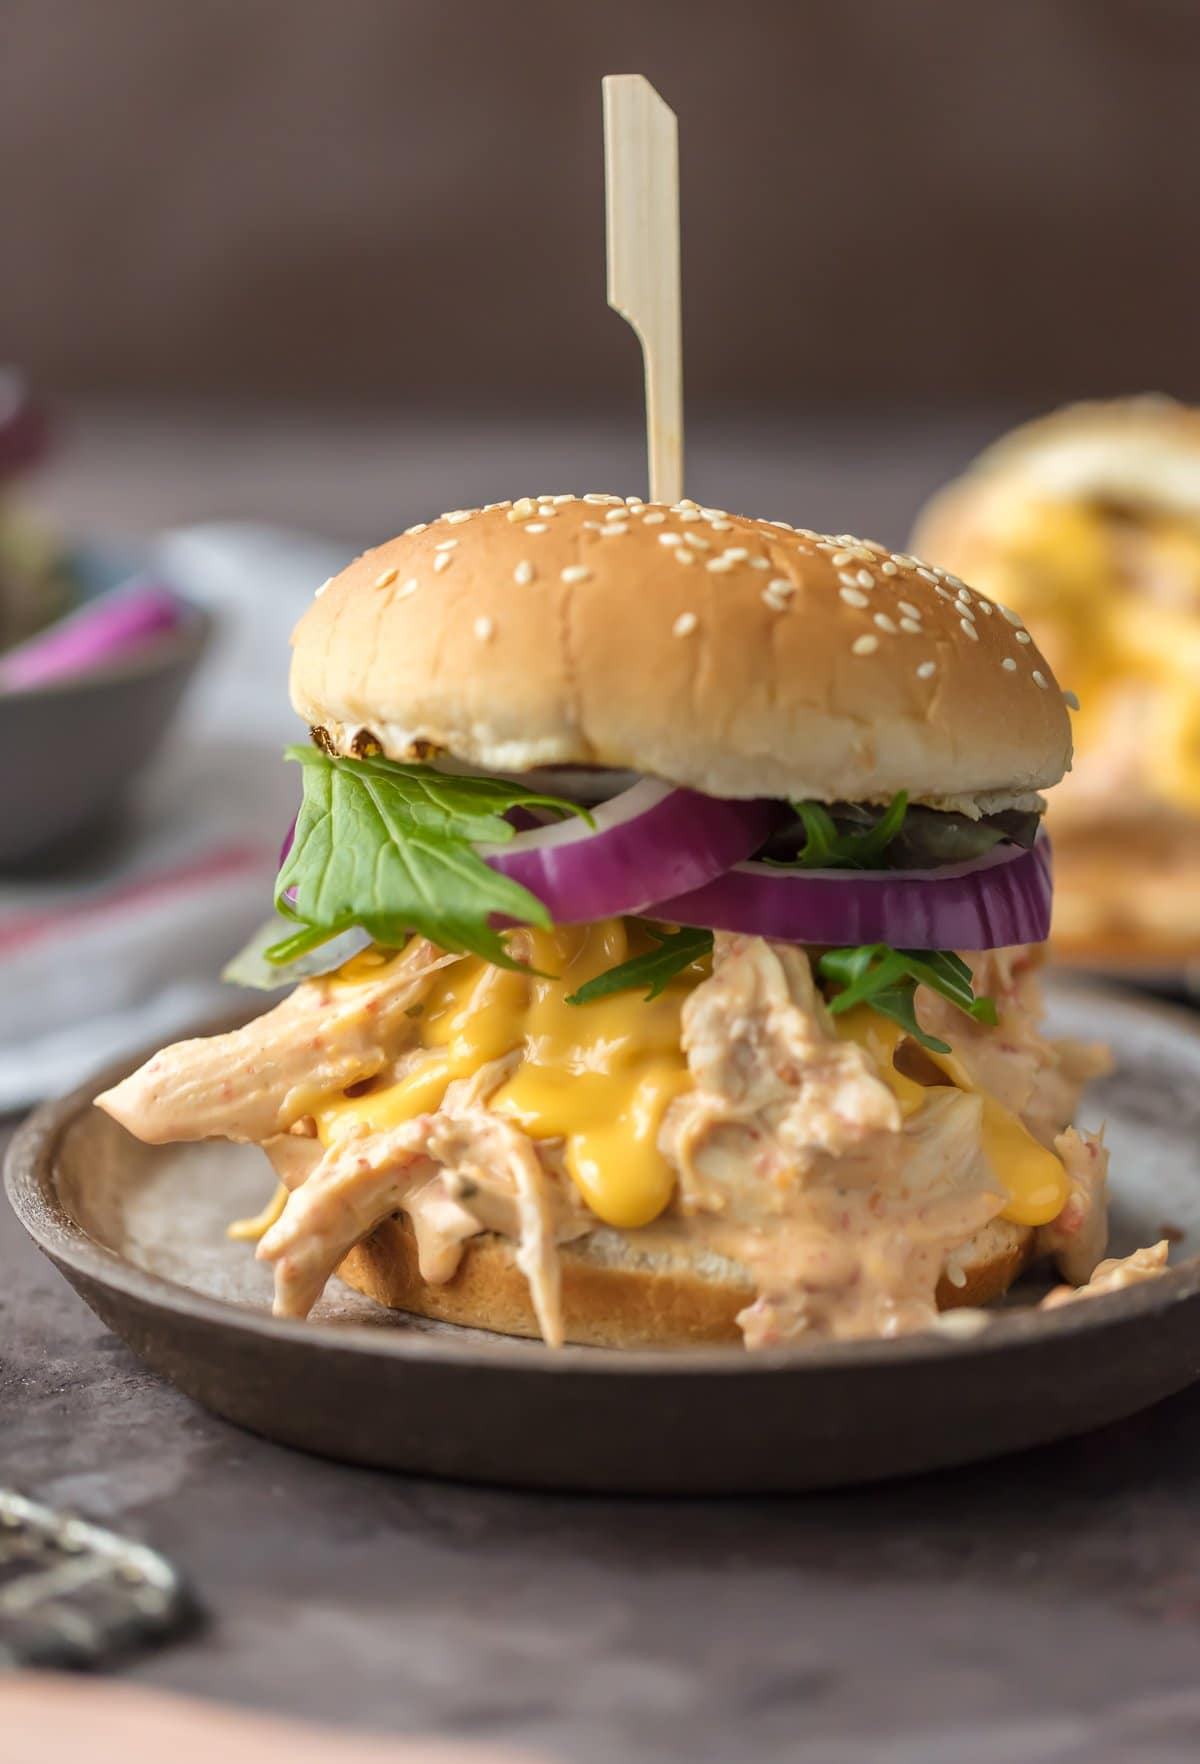 Slow Cooker Rotel Dip Chicken Sandwich, on a hamburger bun with lettuce and onion